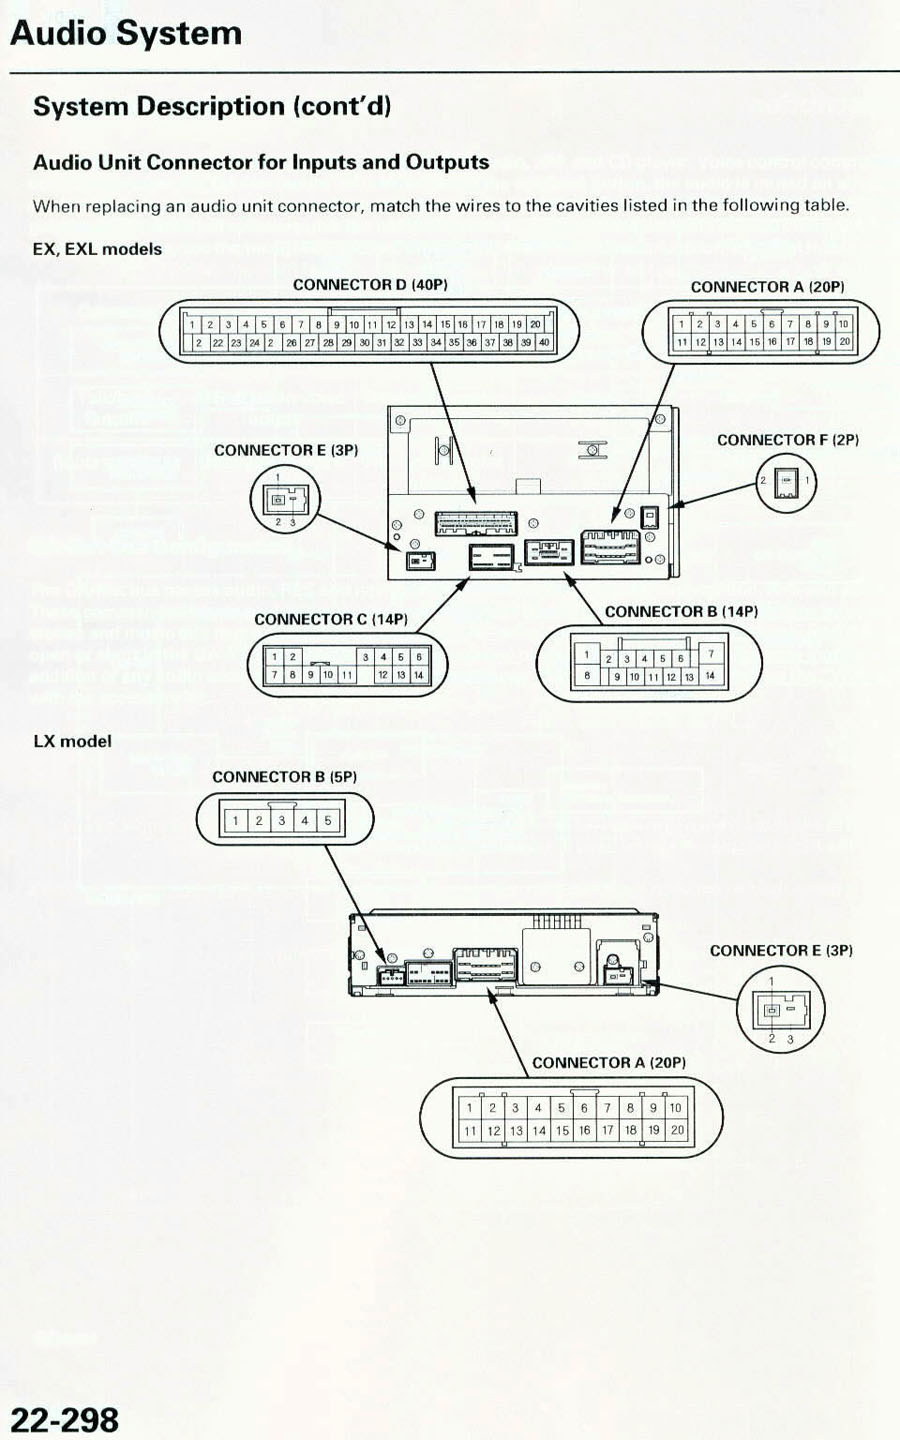 32969d1200063279 re factory subwoofer aftermarket hu audio_connector 2006 re factory subwoofer and aftermarket hu honda pilot honda 2007 honda odyssey stereo wiring diagram at fashall.co